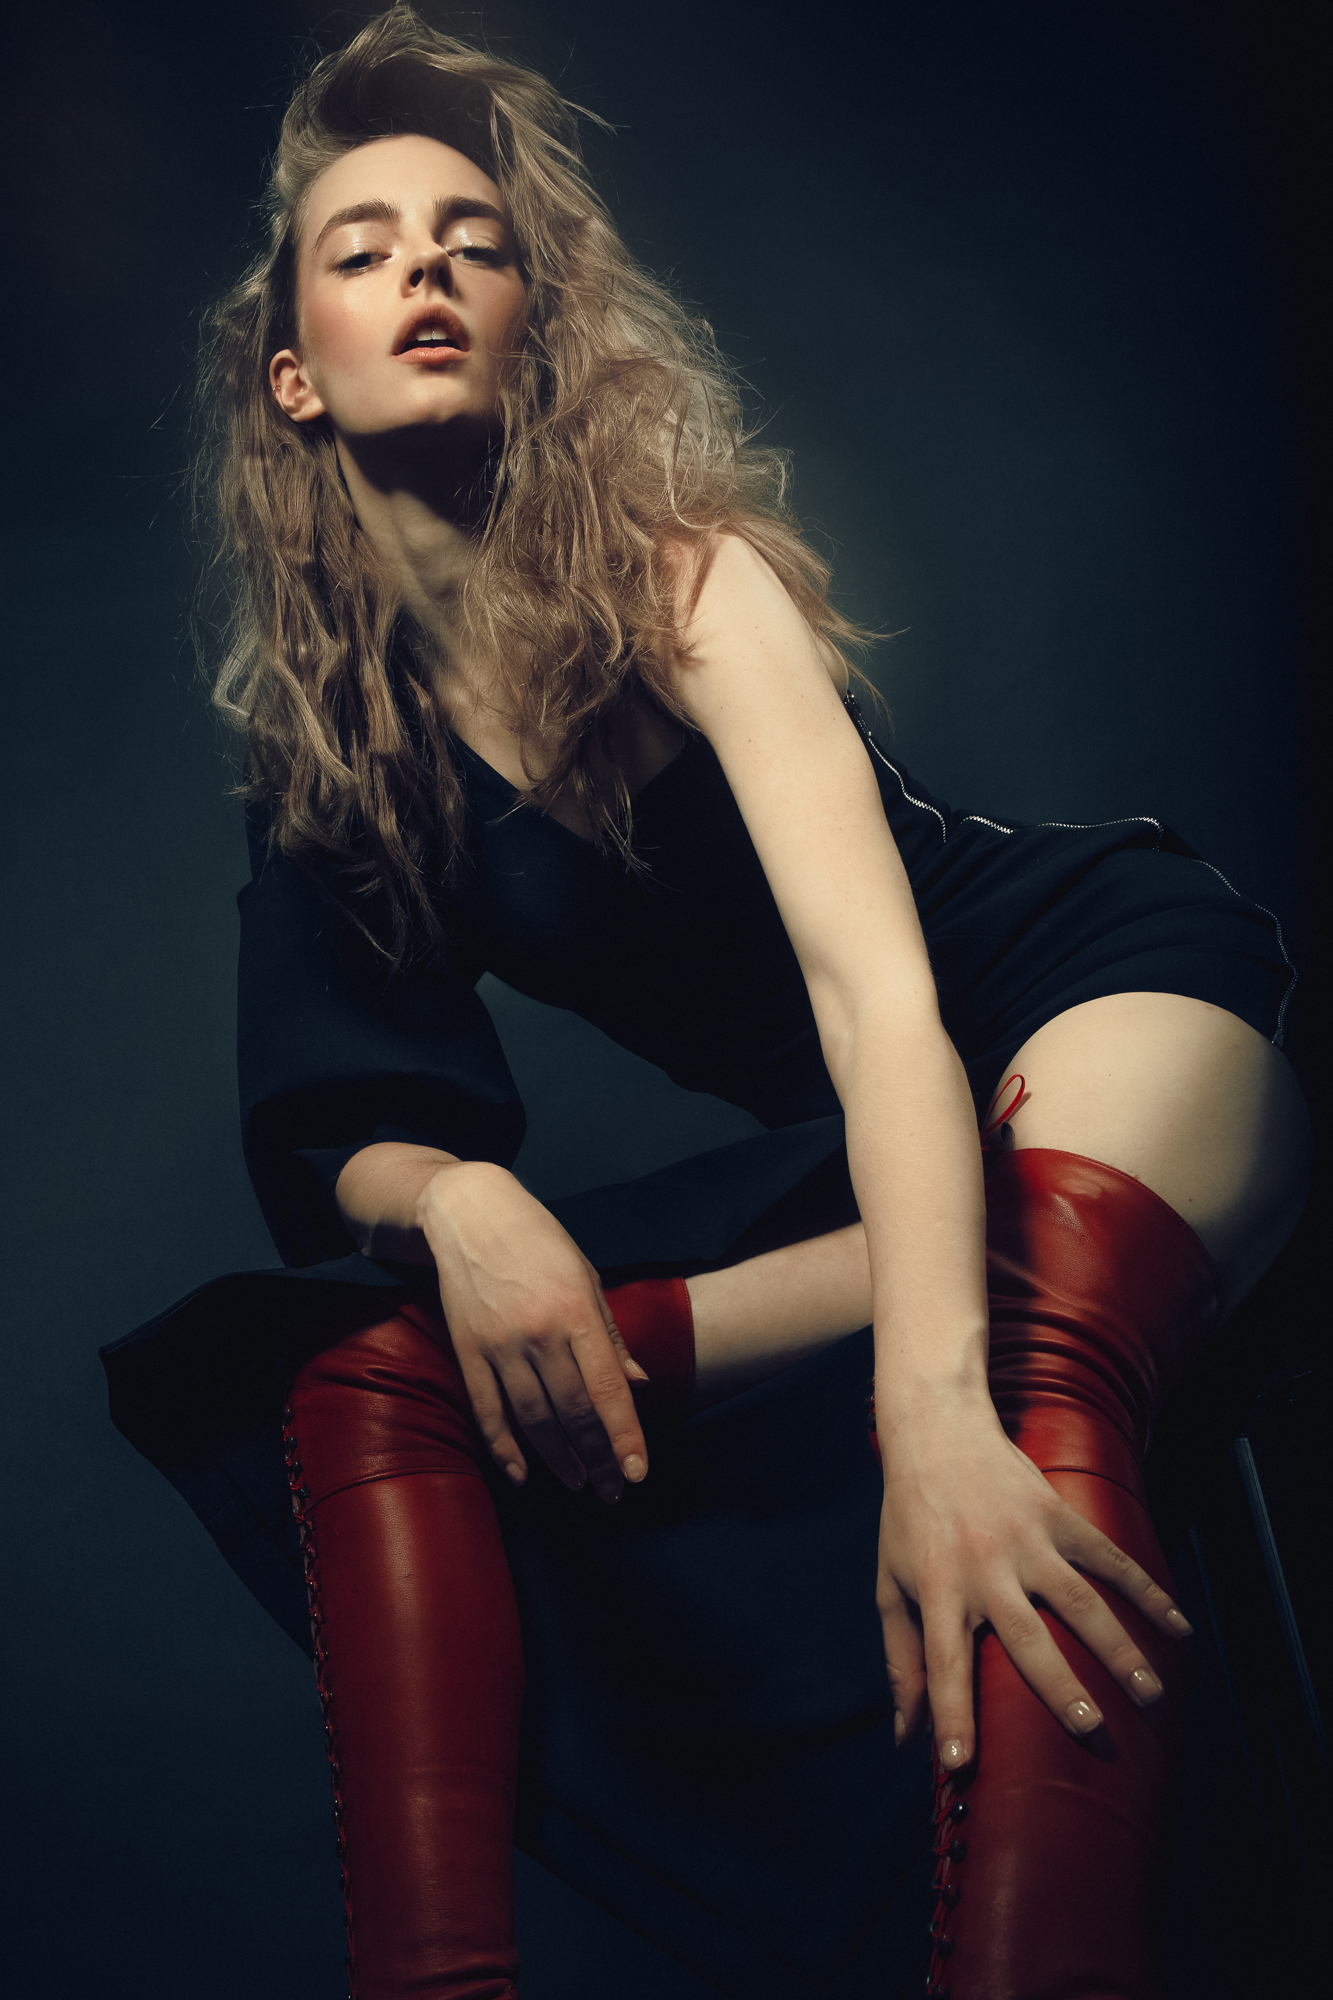 Dress  APHID, Red High laced Boots: Natacha Marro